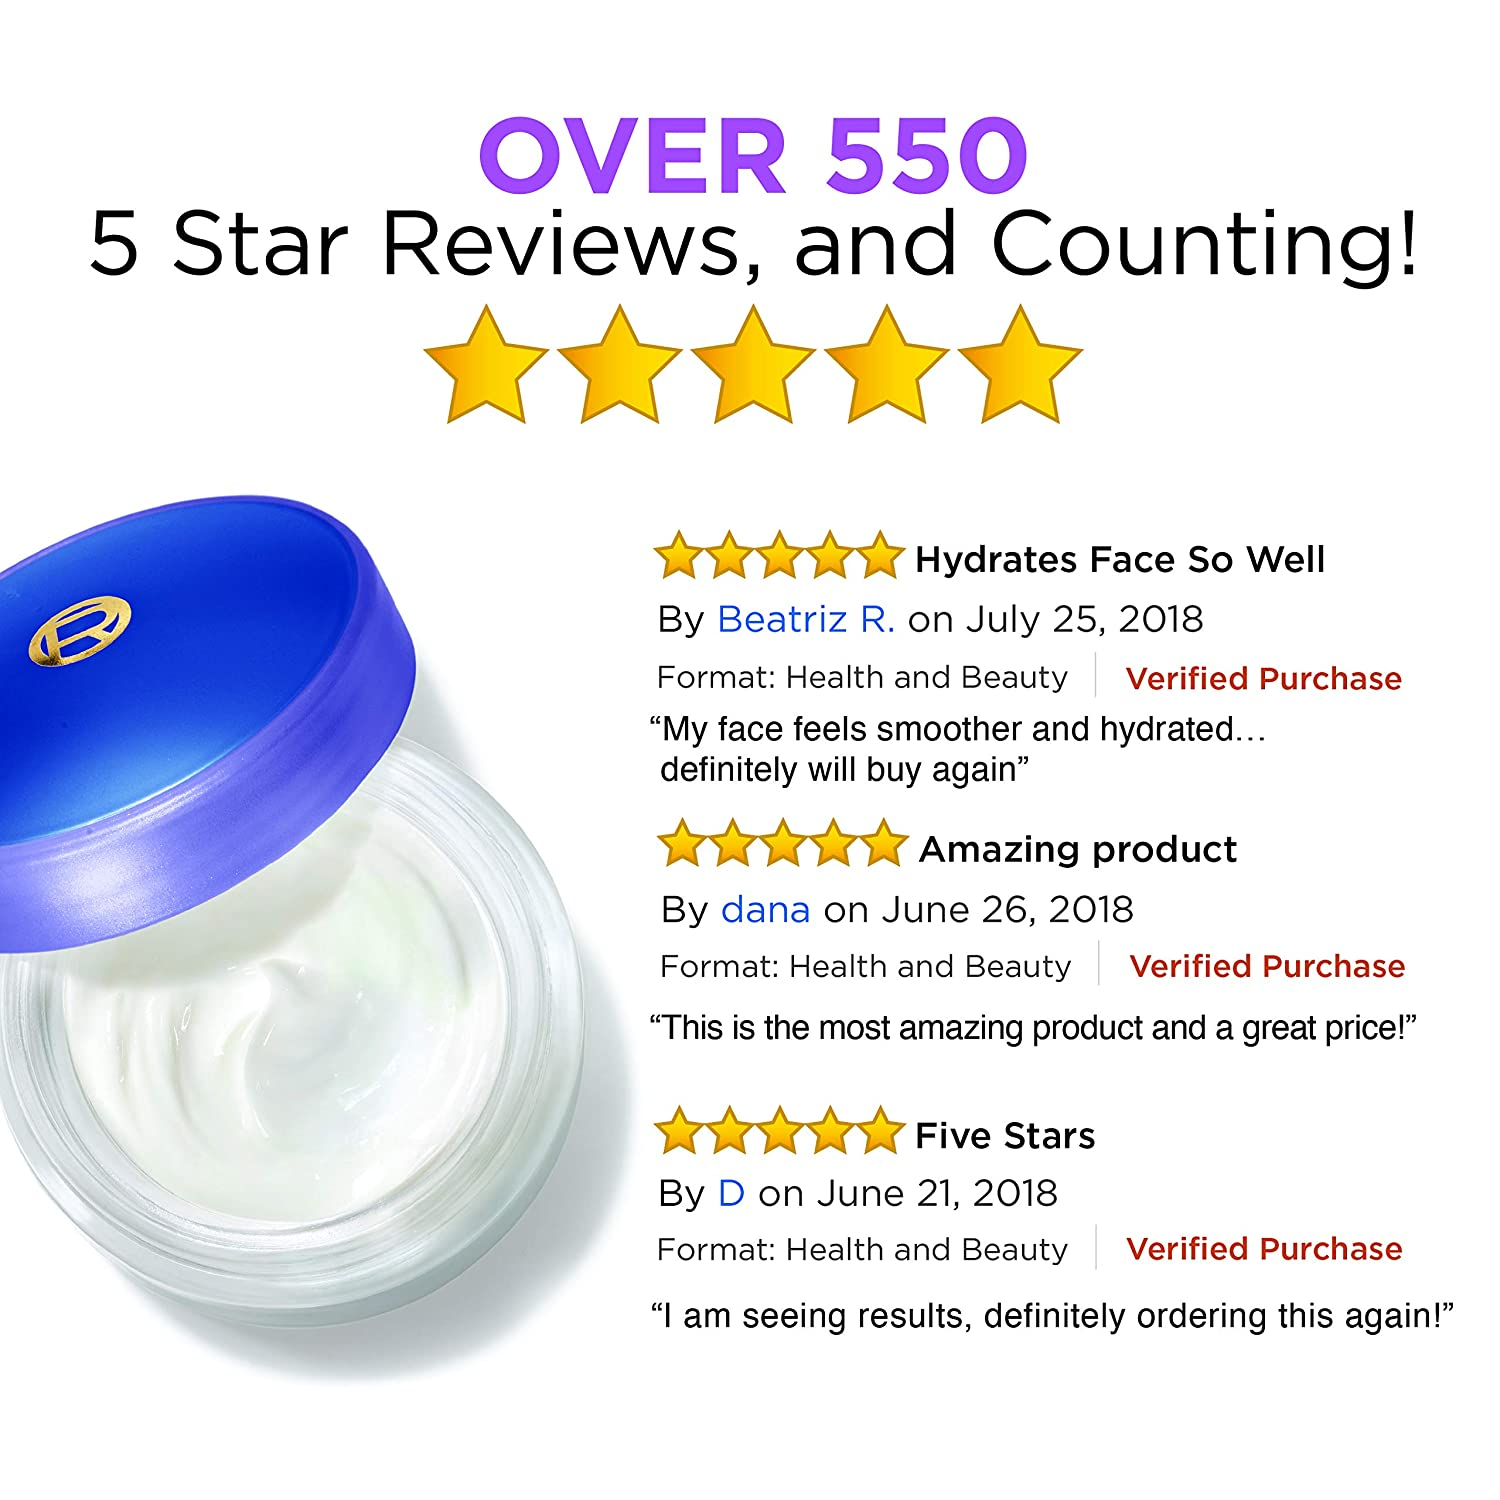 Collagen Face Moisturizer by L'Oreal Paris Skin Care I Day and Night Cream  I Anti-Aging Face Cream to Smooth Wrinkles I Non-Greasy I 1 7 oz